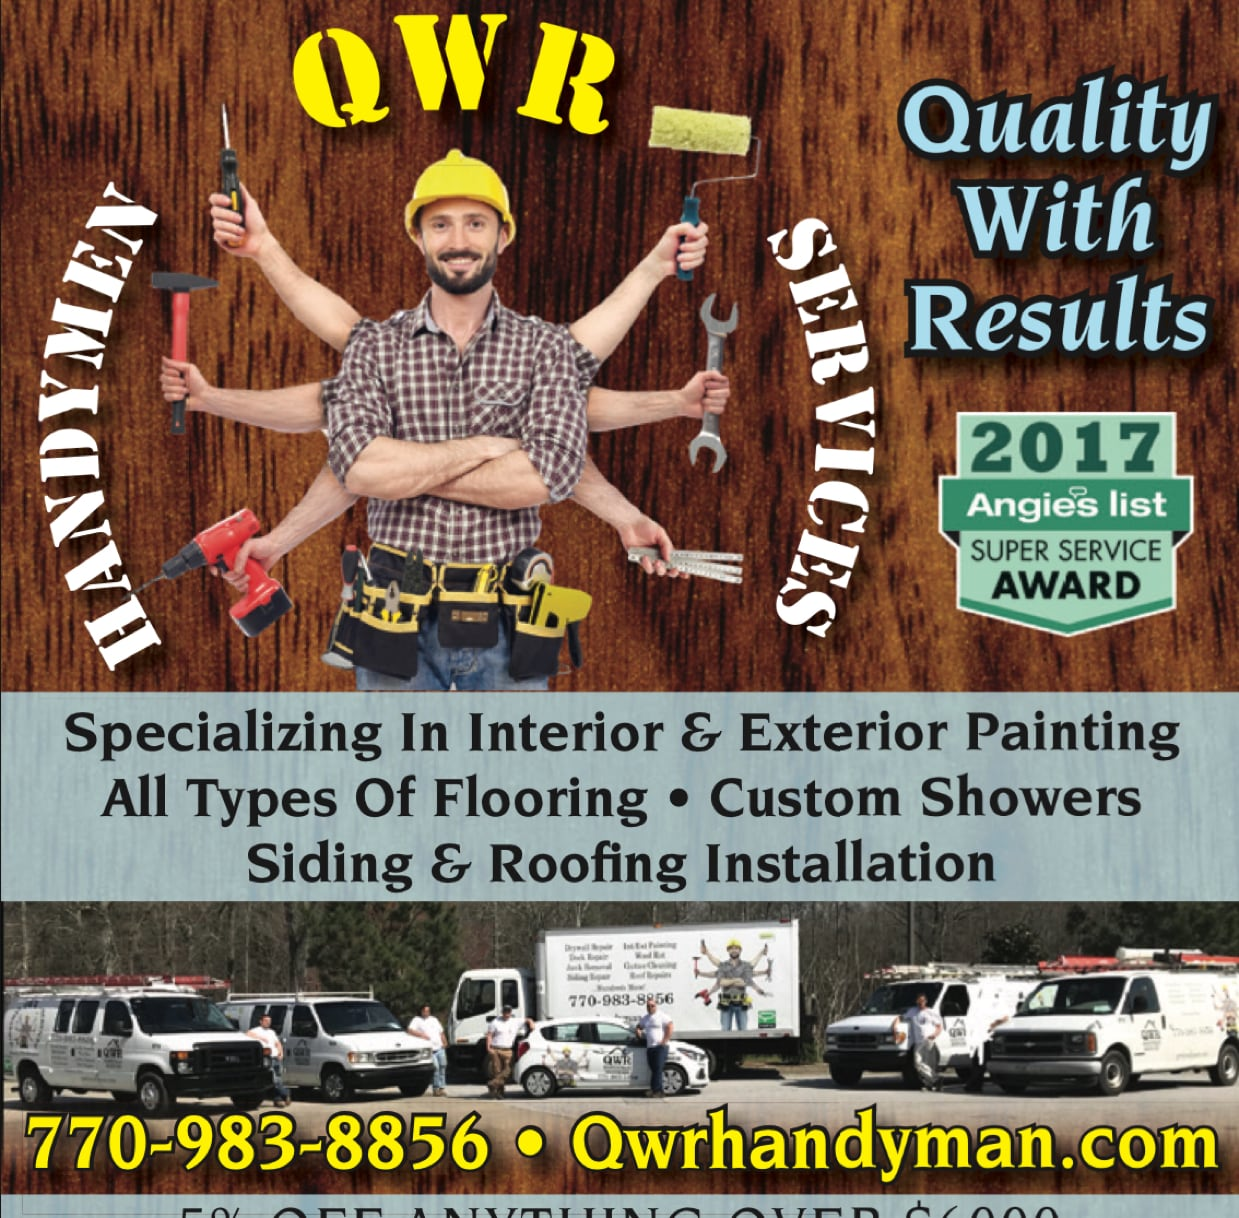 QWR Handyman Services Inc